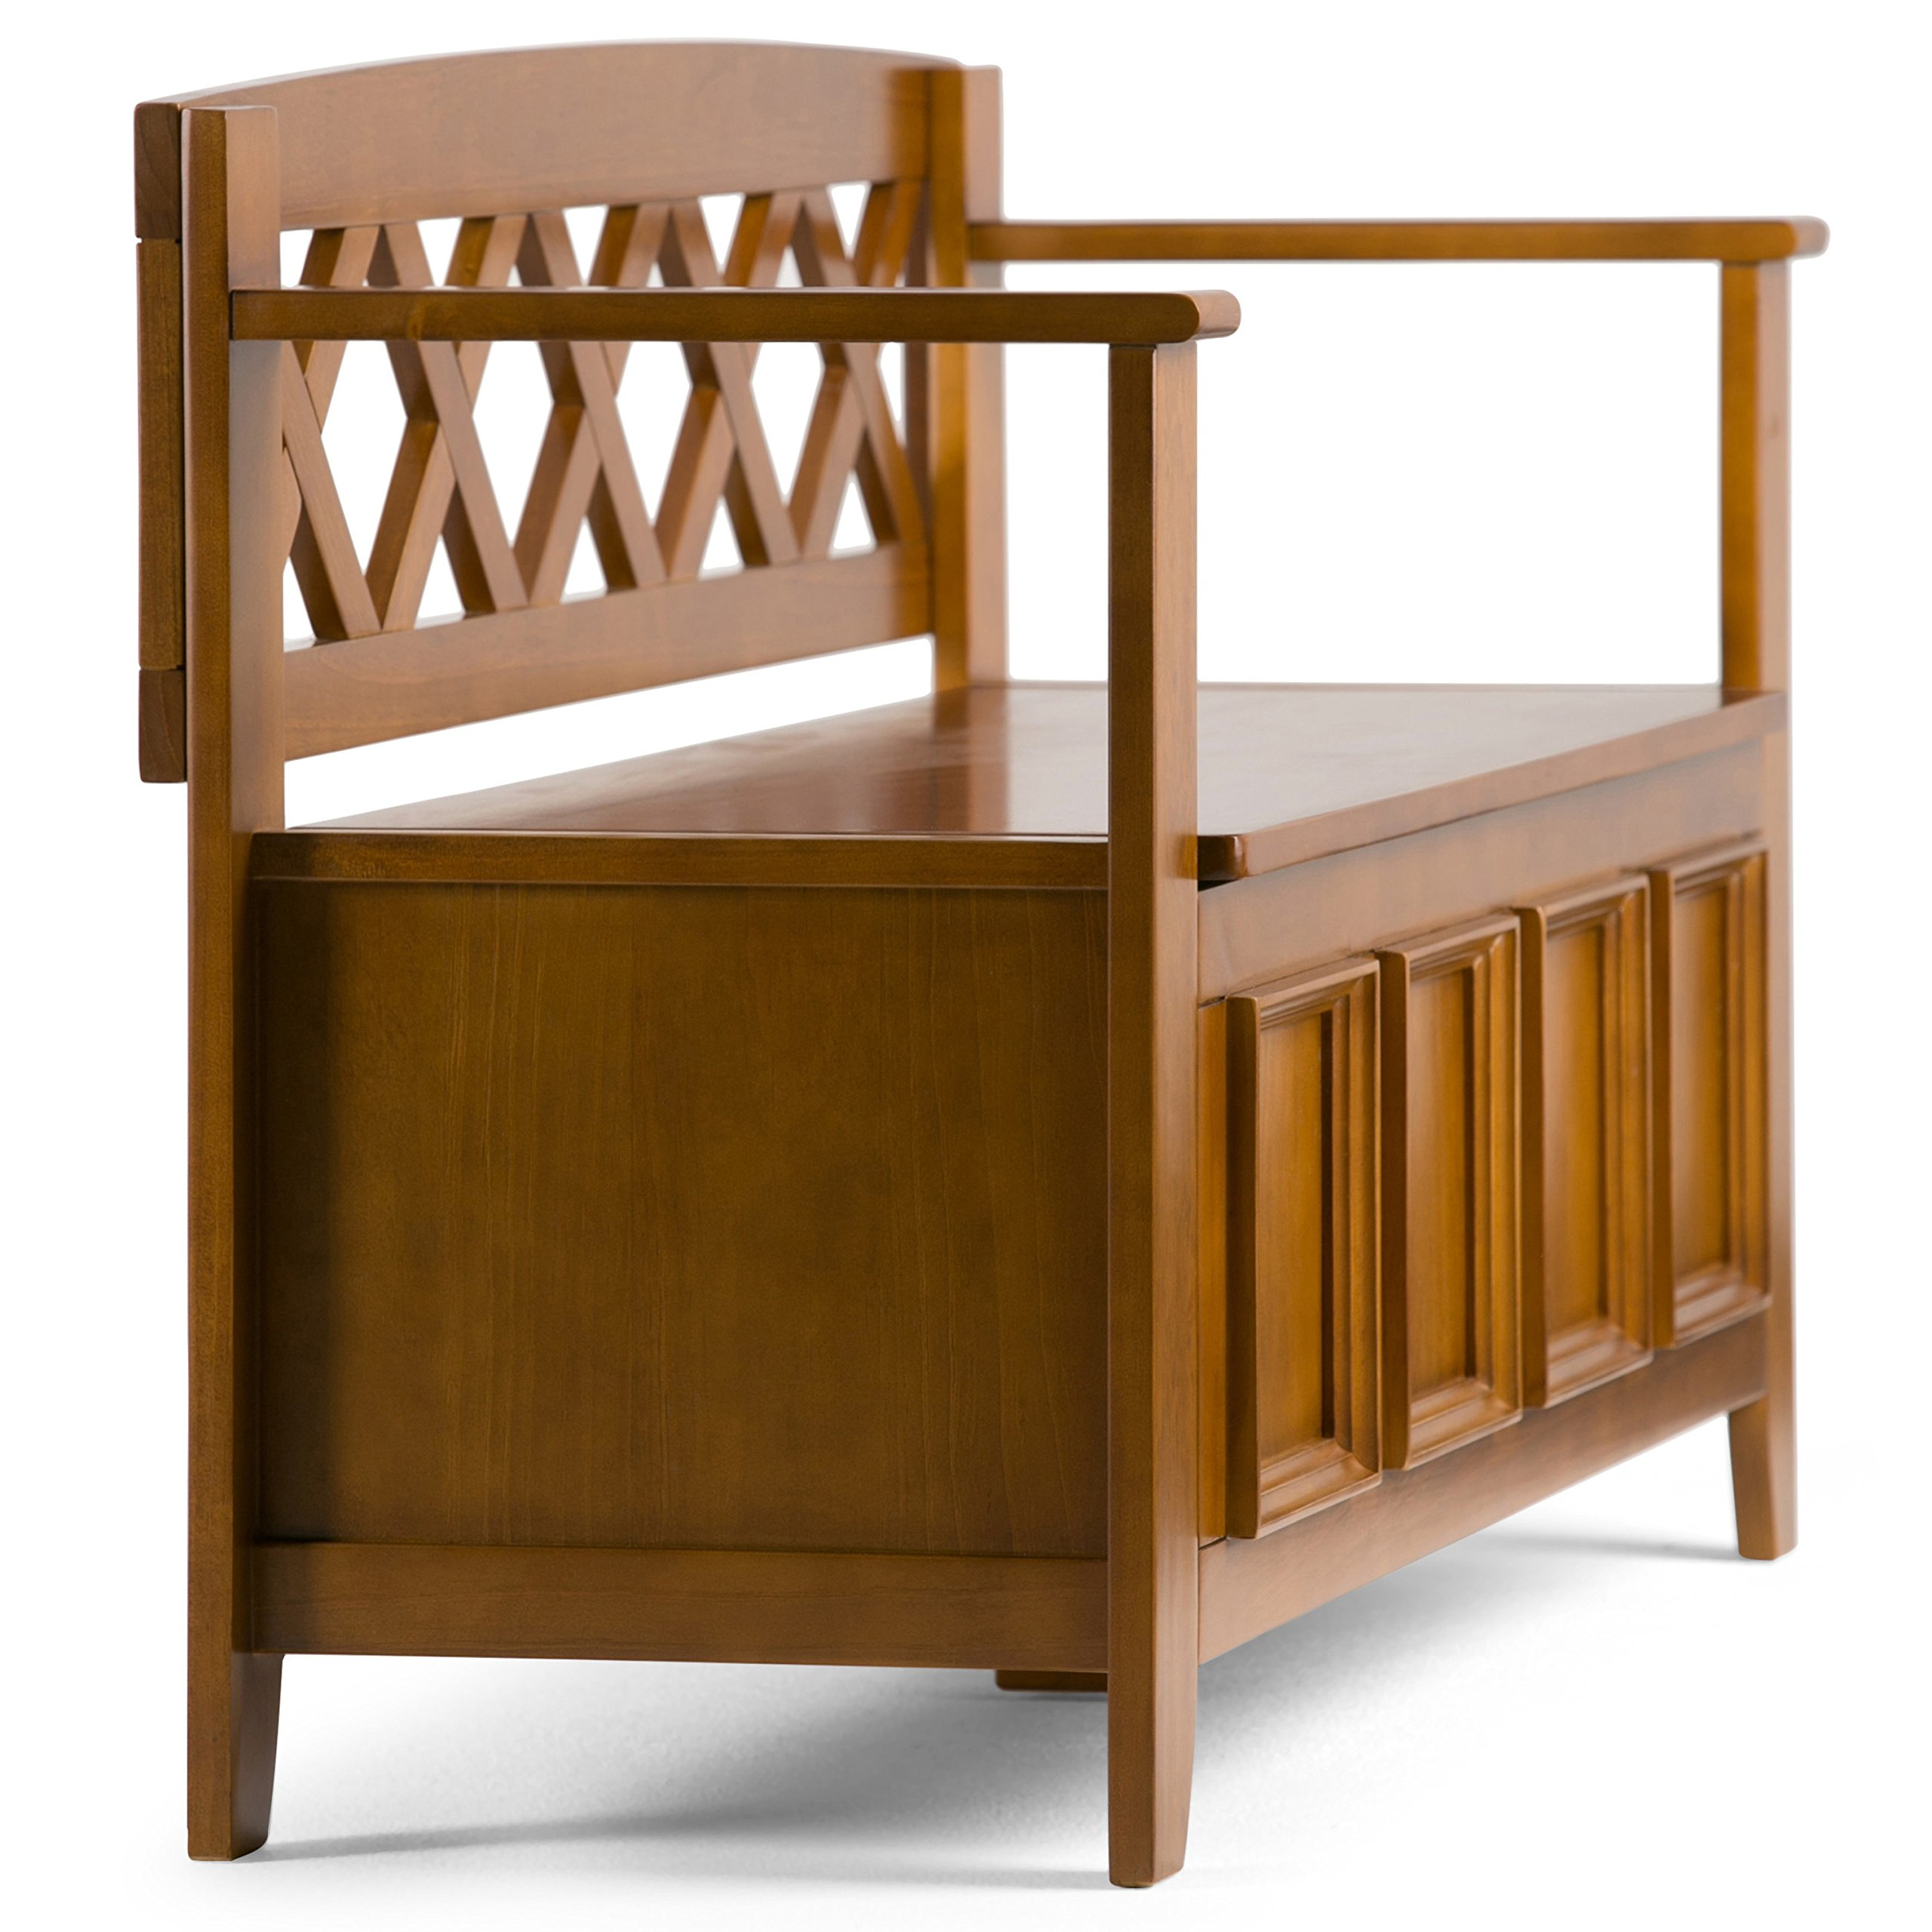 Simpli Home Amherst Solid Wood Entryway Storage Bench, Light Avalon Solid Wood Brown by Simpli Home (Image #5)